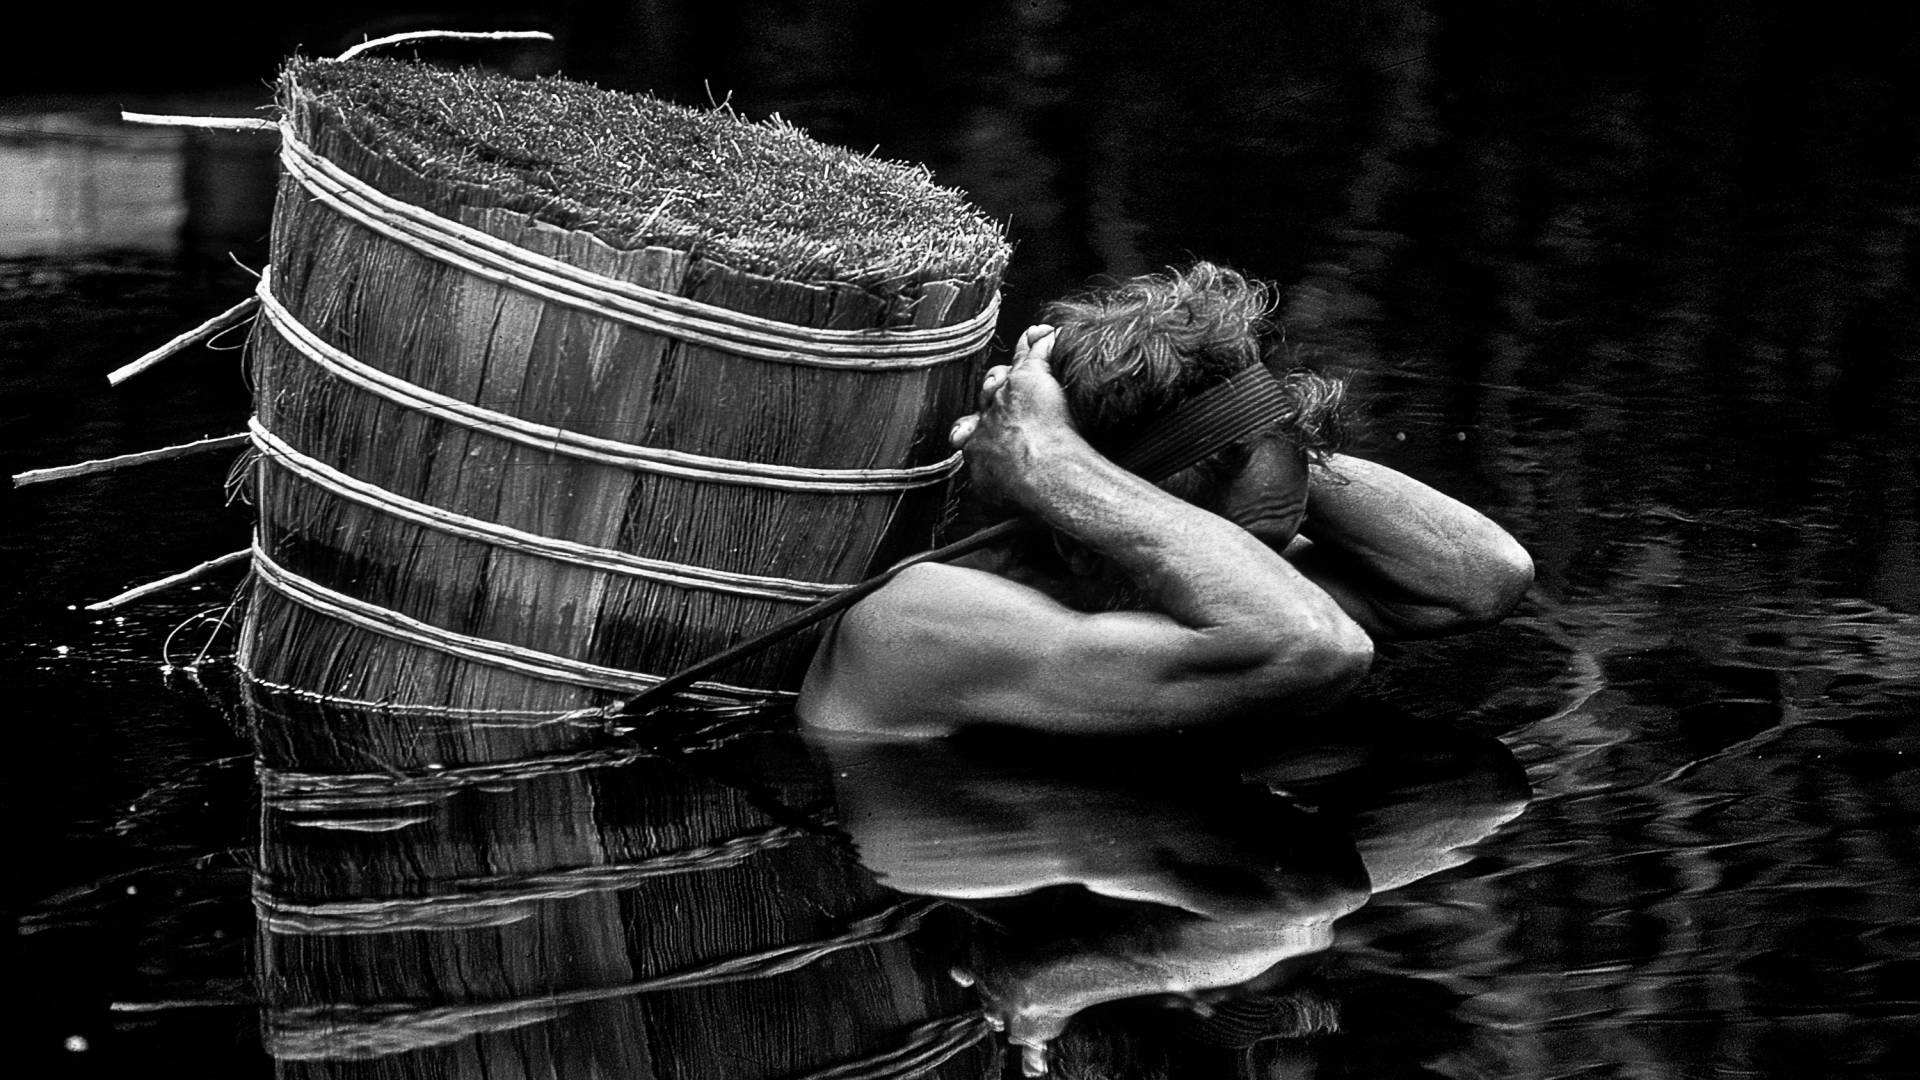 A man in water carying a barrel on his back